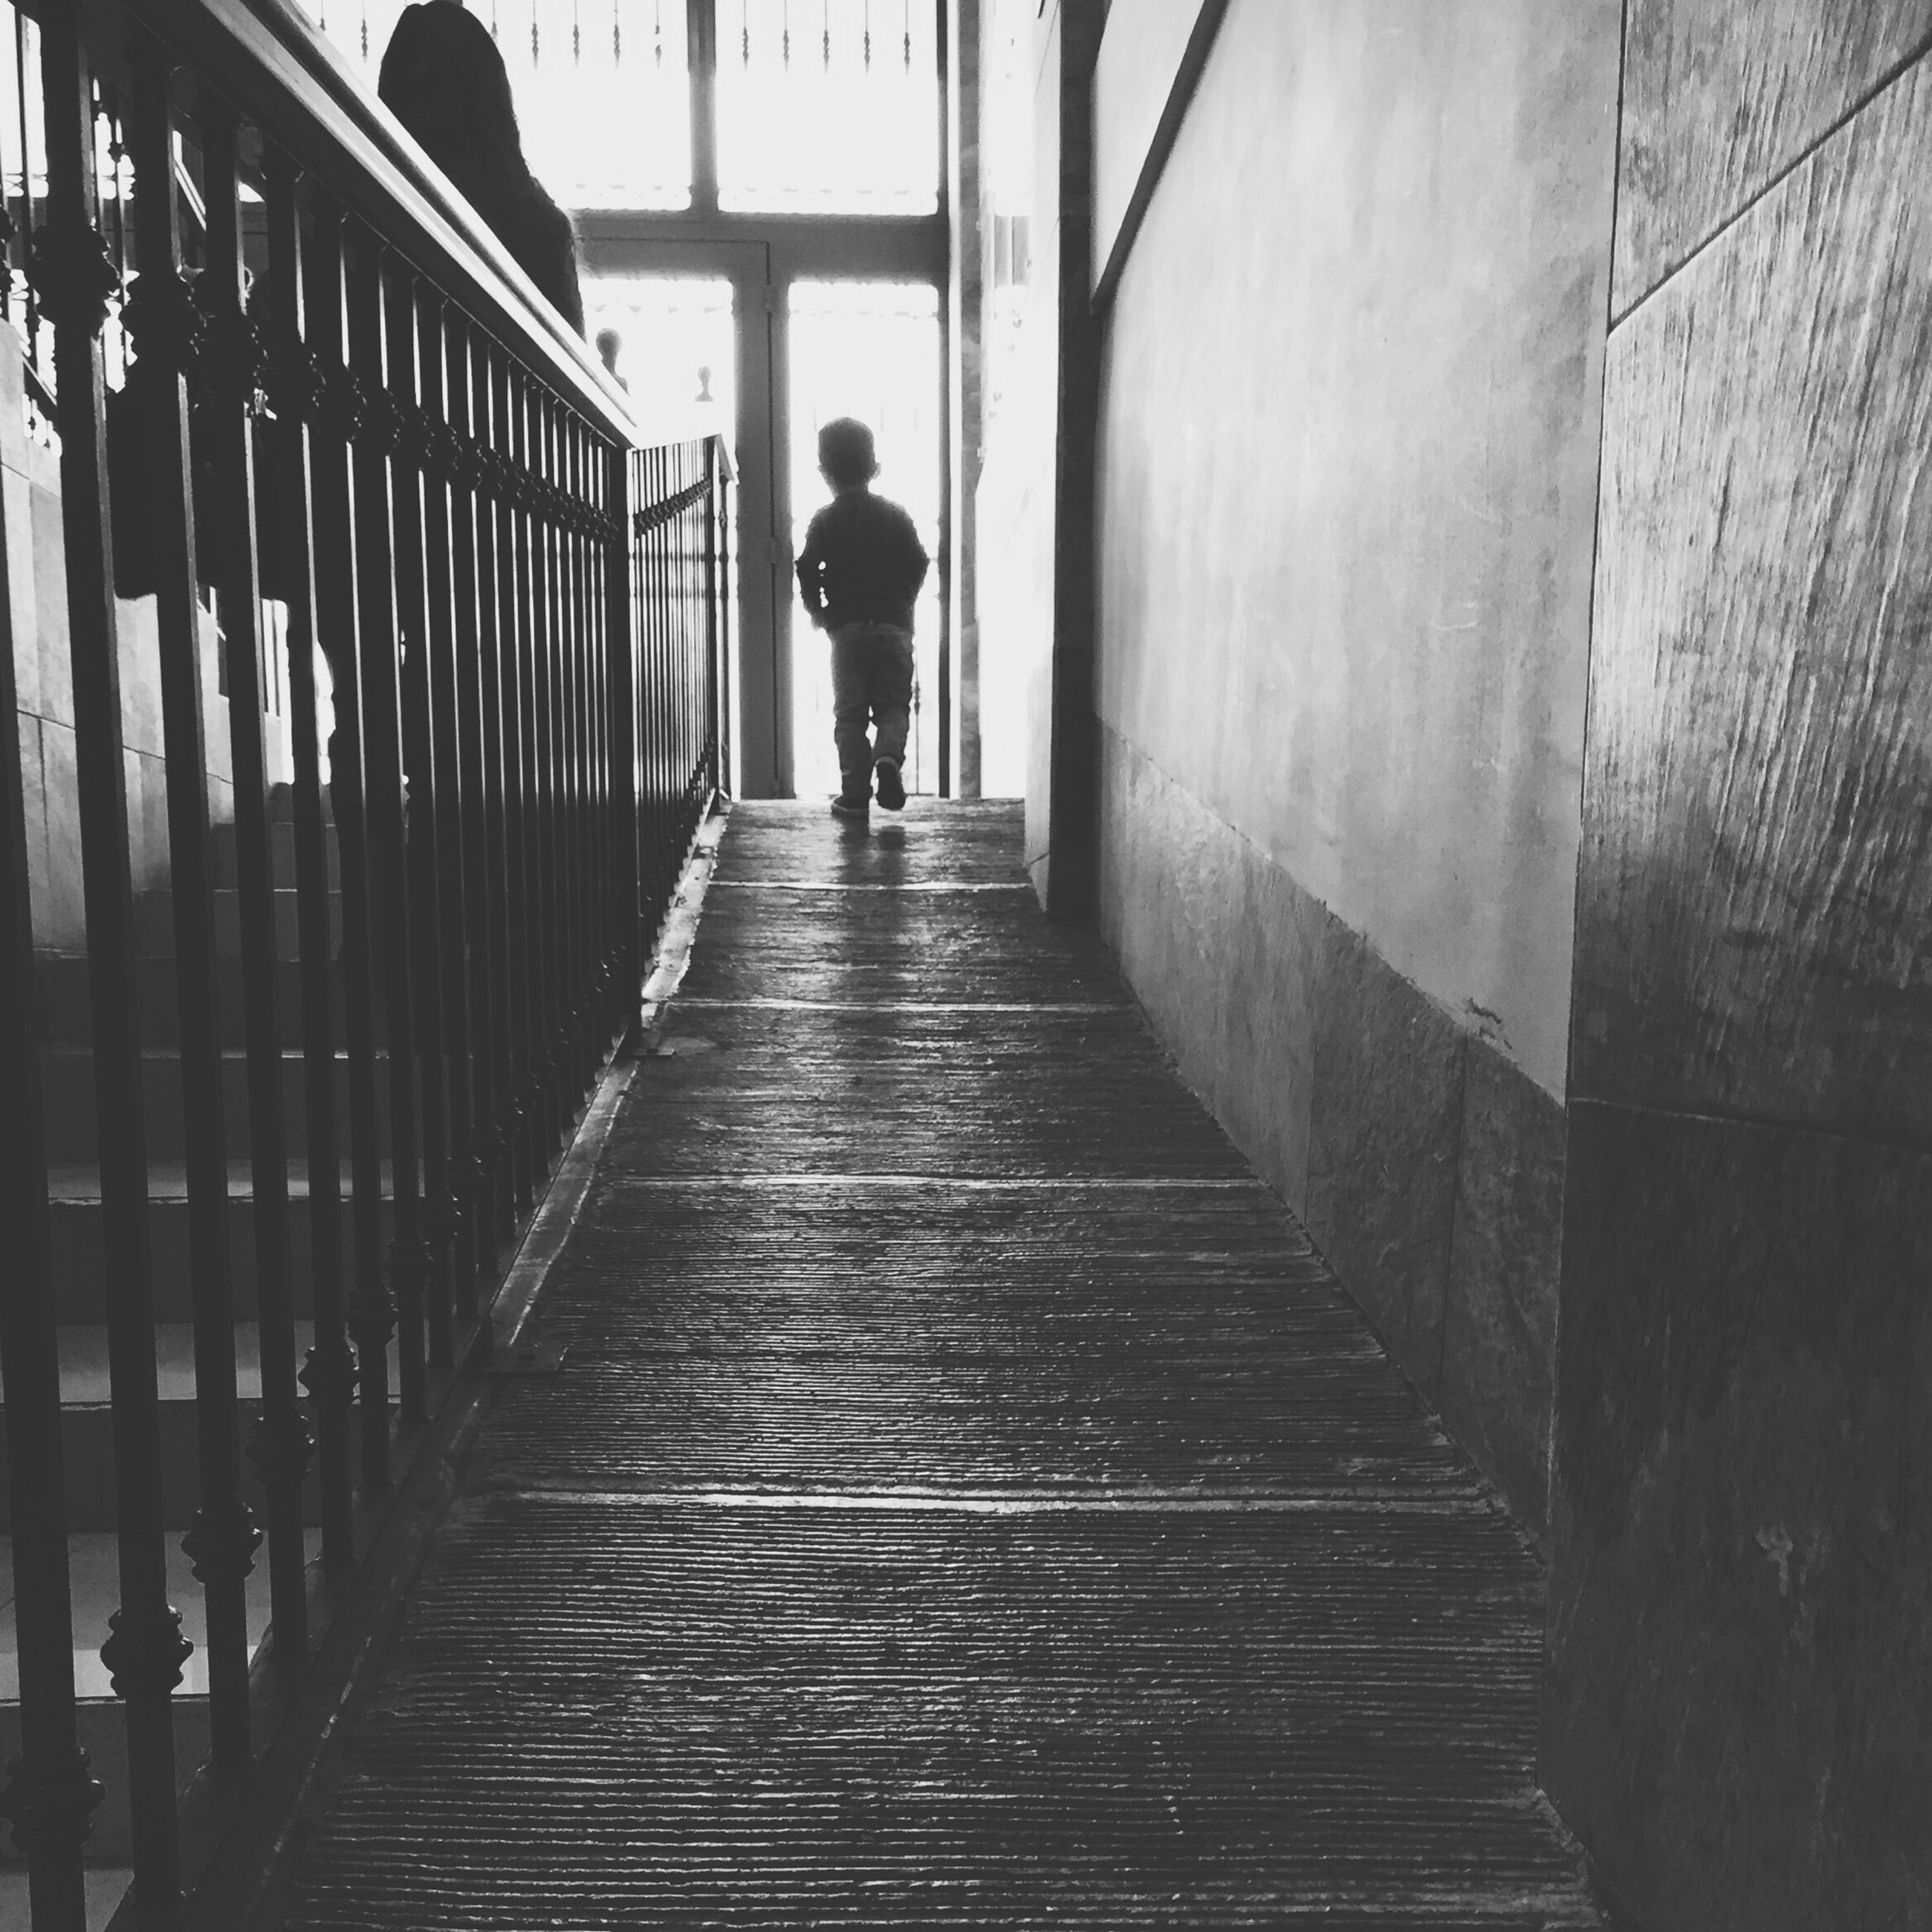 architecture, full length, built structure, rear view, walking, the way forward, men, lifestyles, indoors, railing, silhouette, corridor, leisure activity, standing, person, unrecognizable person, wall - building feature, day